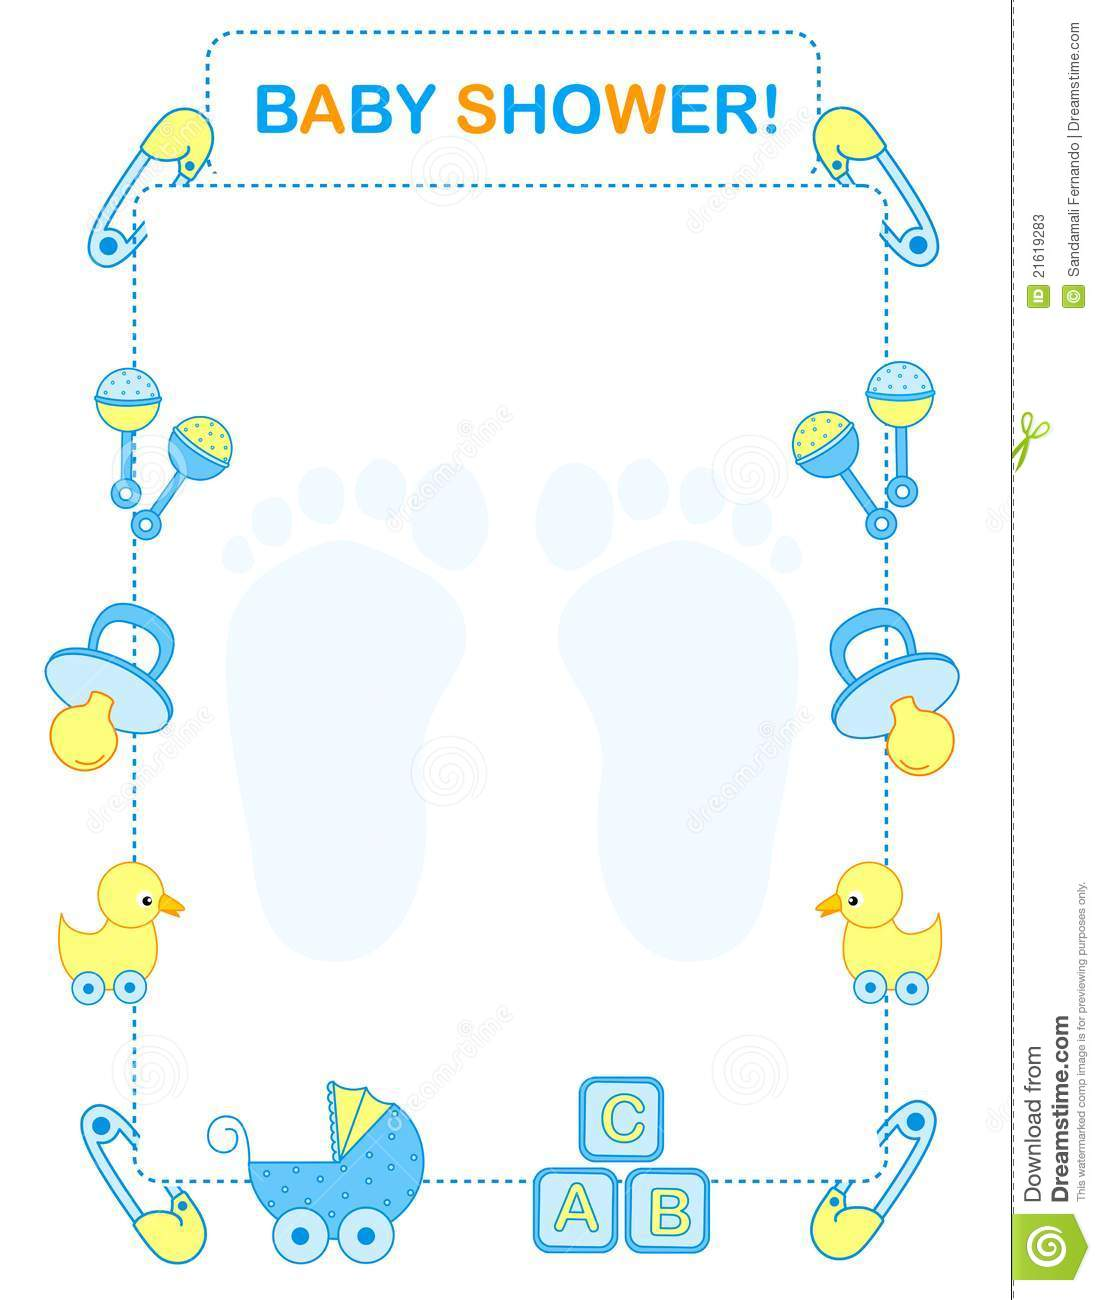 Baby shower clipart for invitations 7 » Clipart Station.